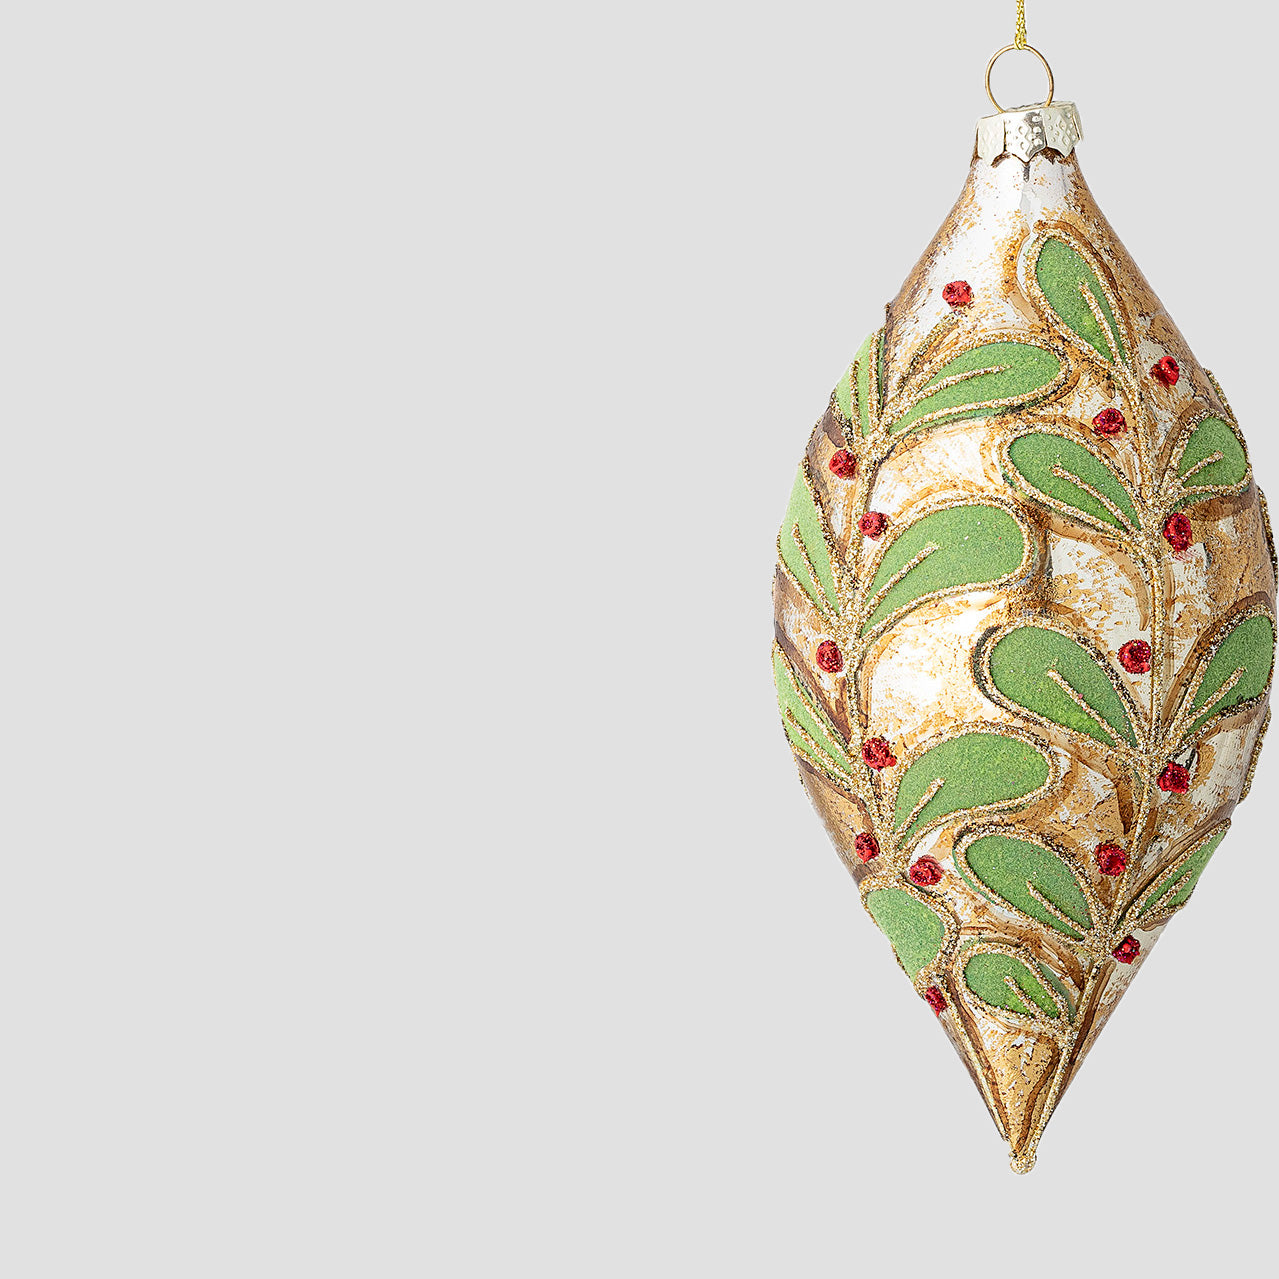 Glass decorative ornament